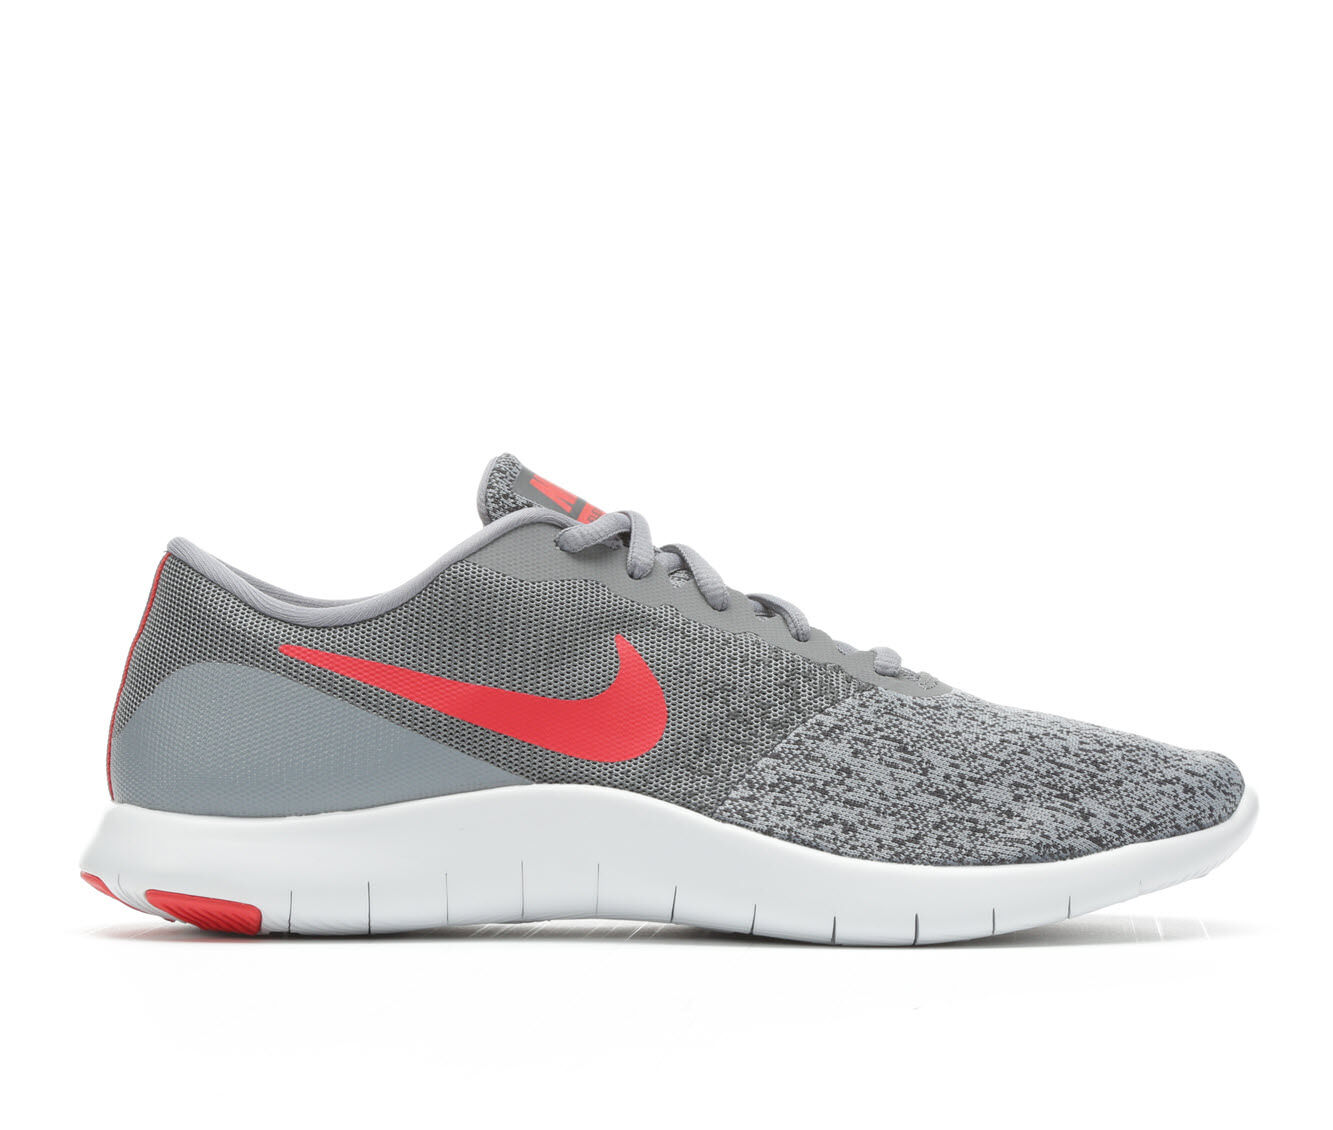 Men's Nike Flex Contact Running Shoes Gry/Red/Wht 006